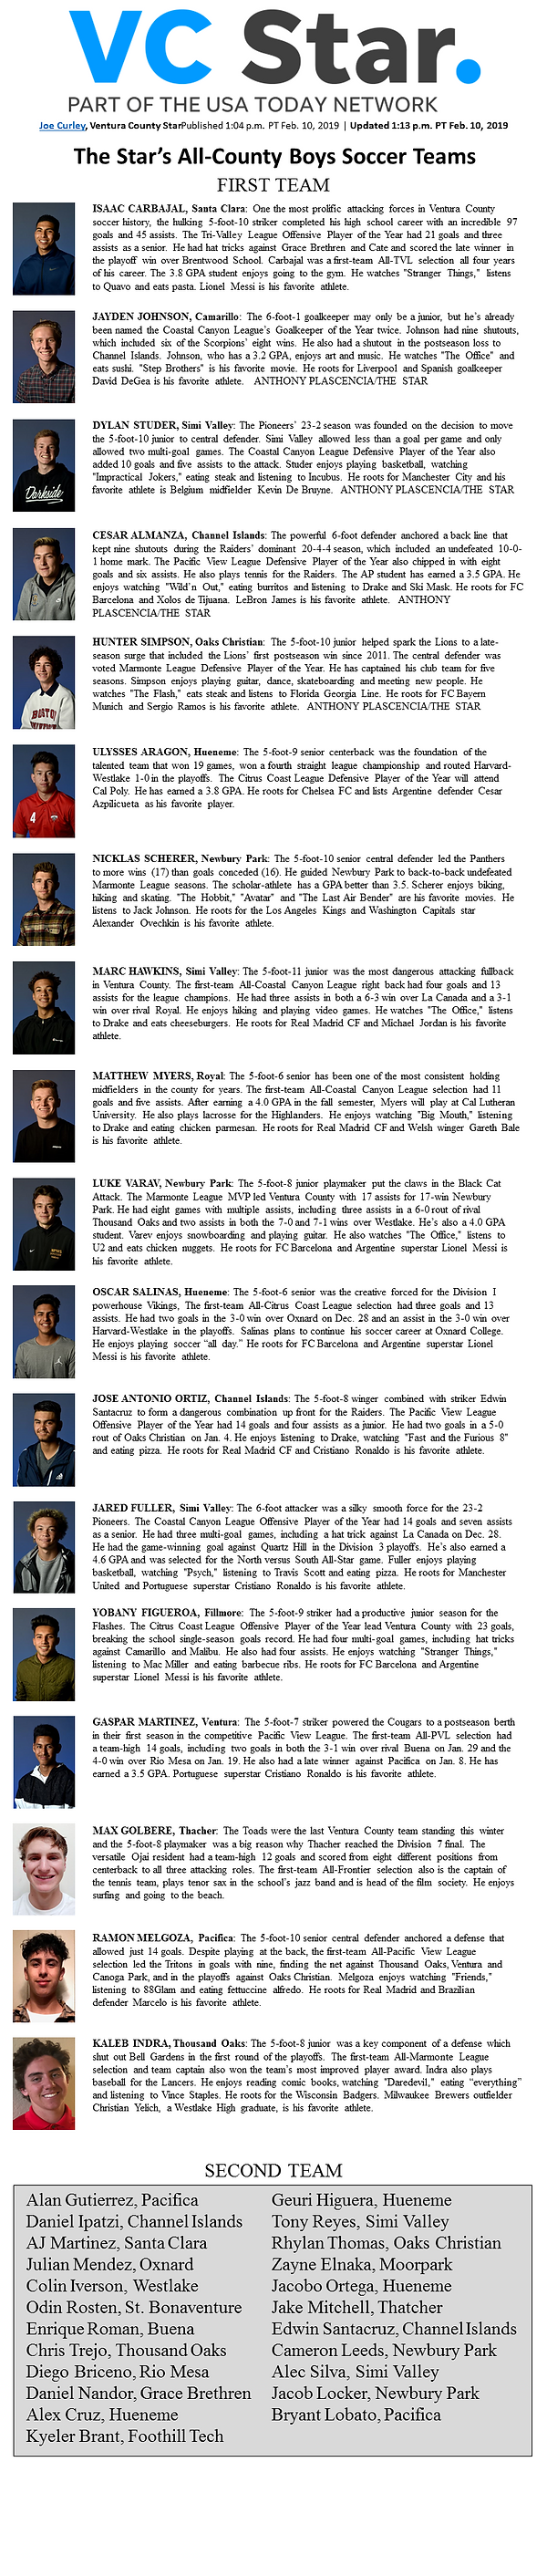 VC Star All County.png